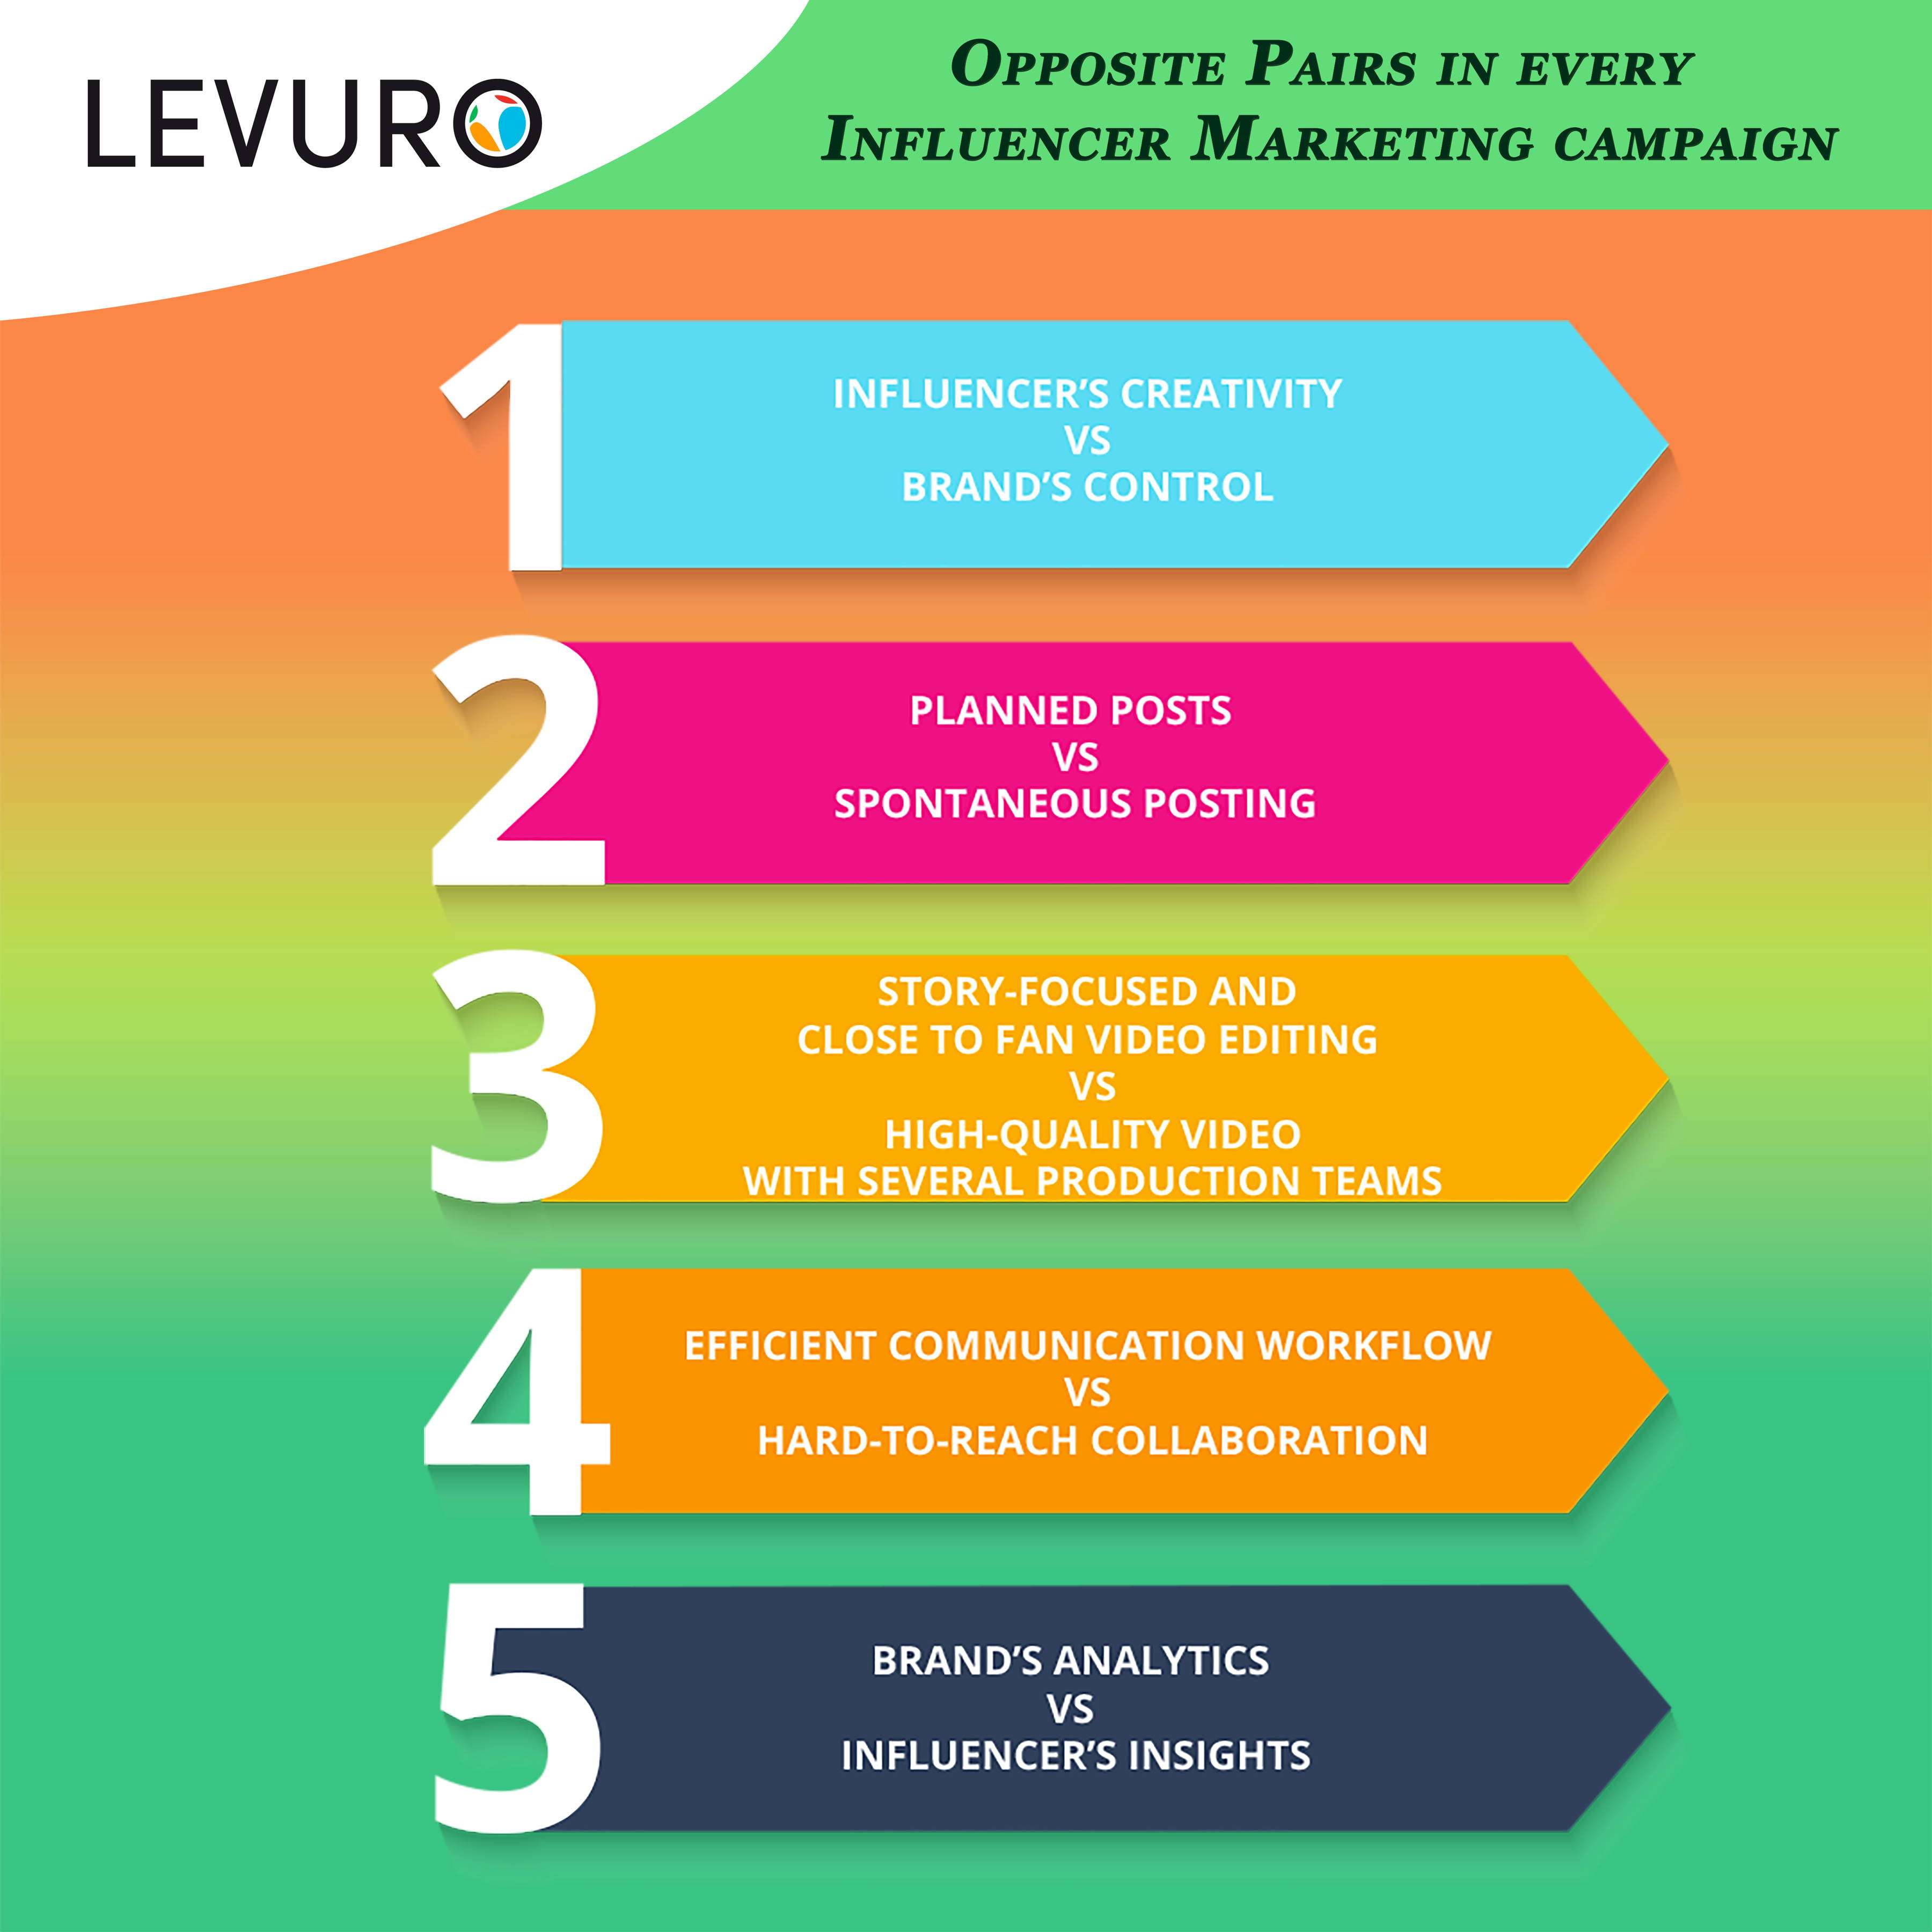 OPPOSITE PAIRS IN INFLUENCER MARKETING - LEVURO ENGAGE